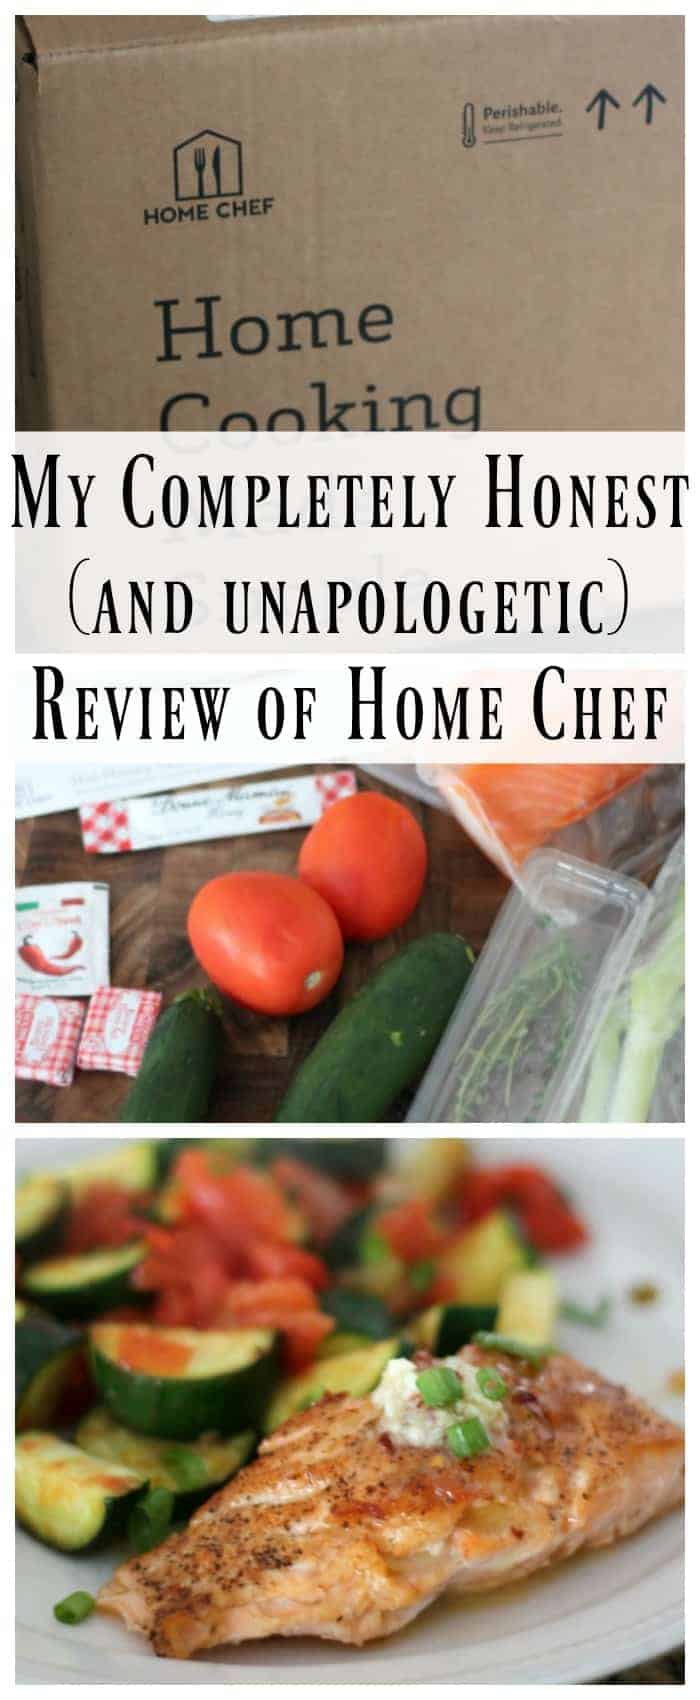 My Completely Honest (and apologetic) Review of Home Chef